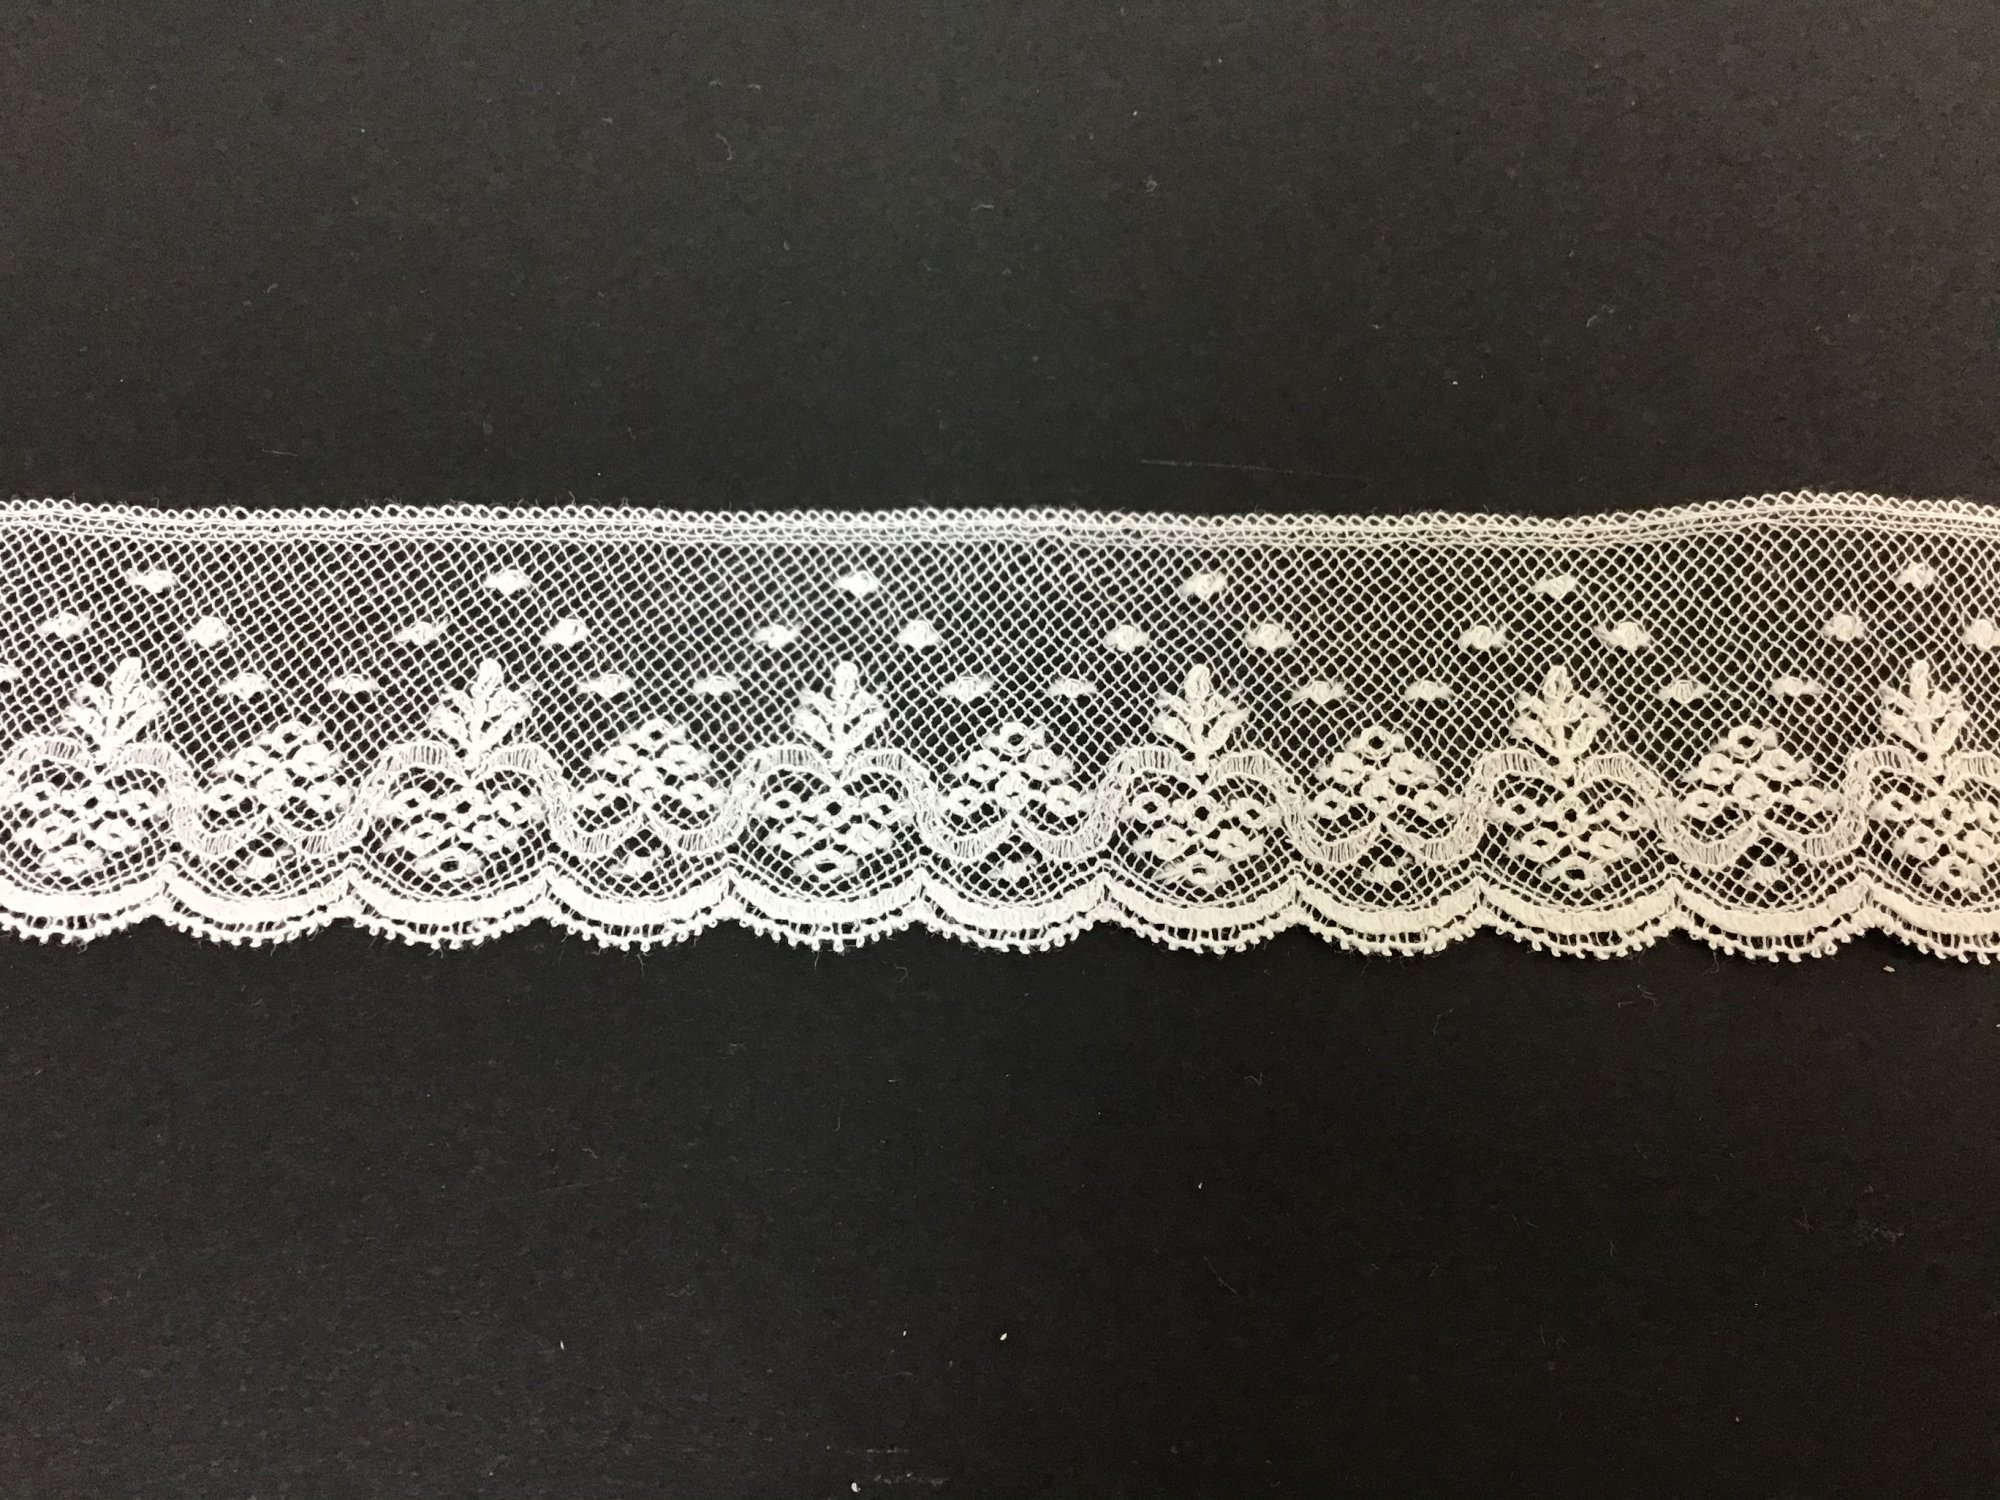 French Maline Lace Edging 1.25 Inch White 200374-09